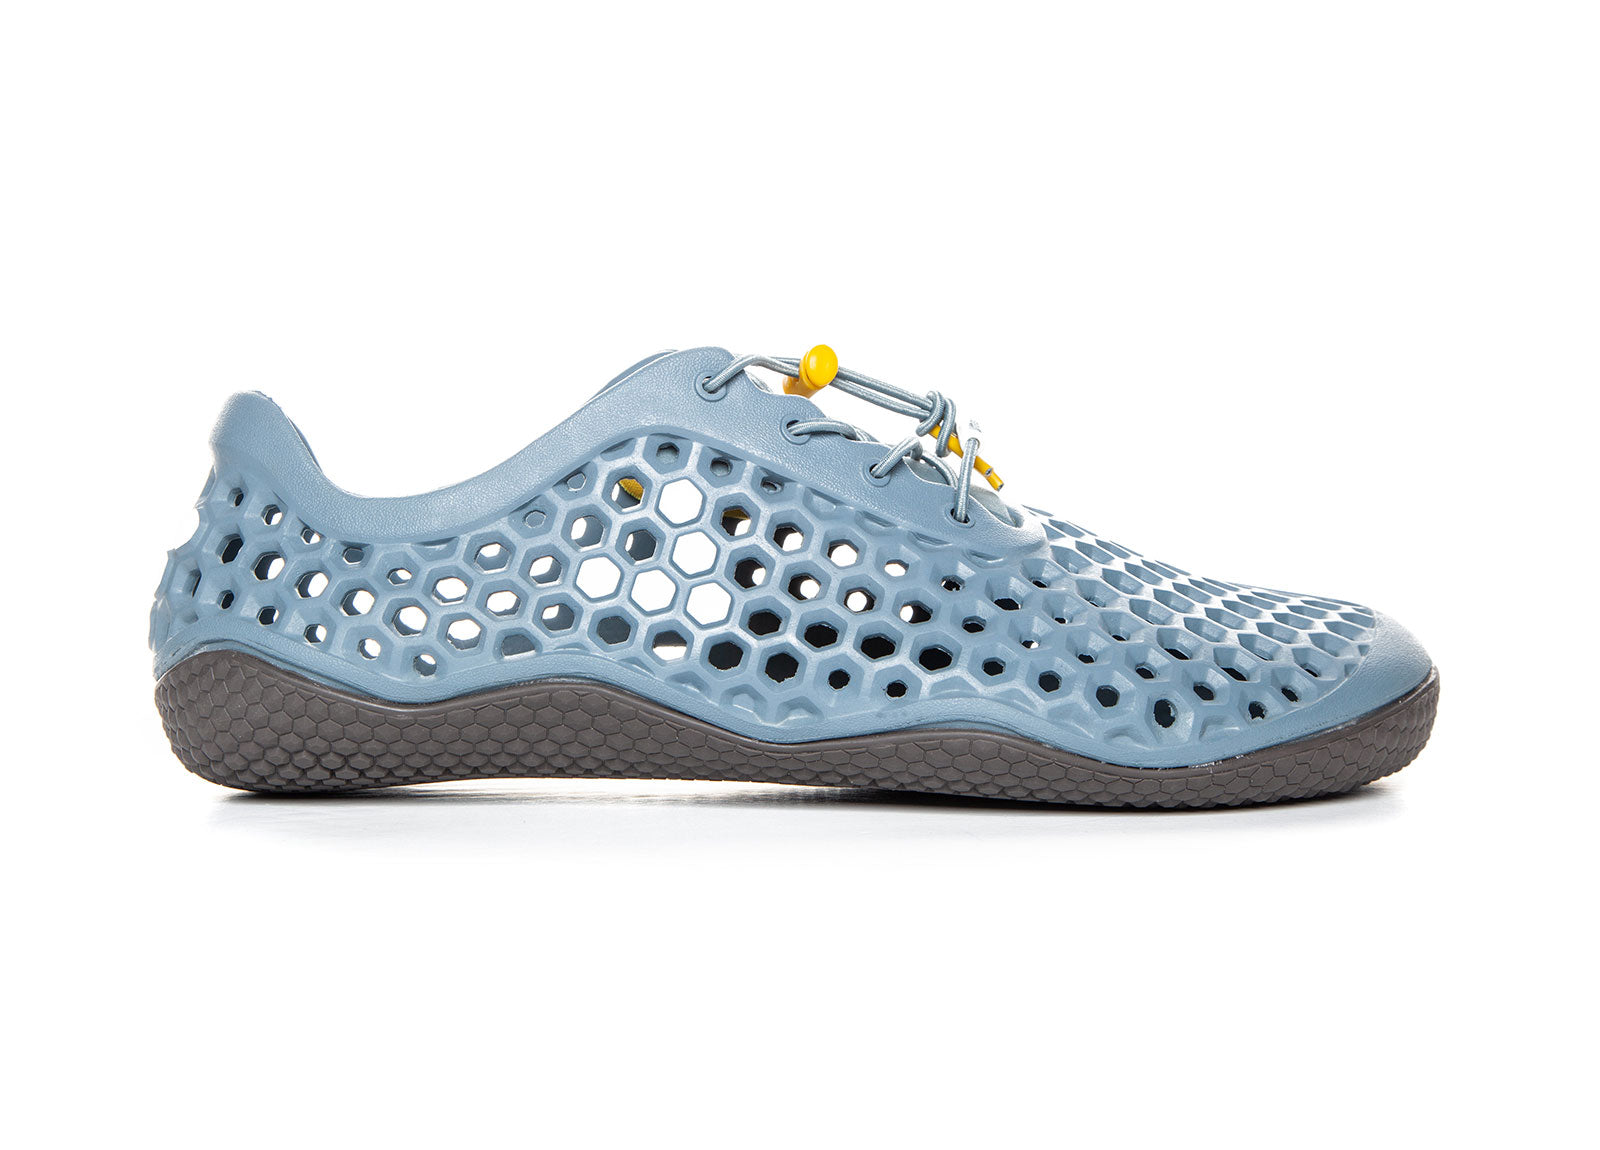 8e4133db29744 Men's VIVOBAREFOOT x Finisterre Ultra